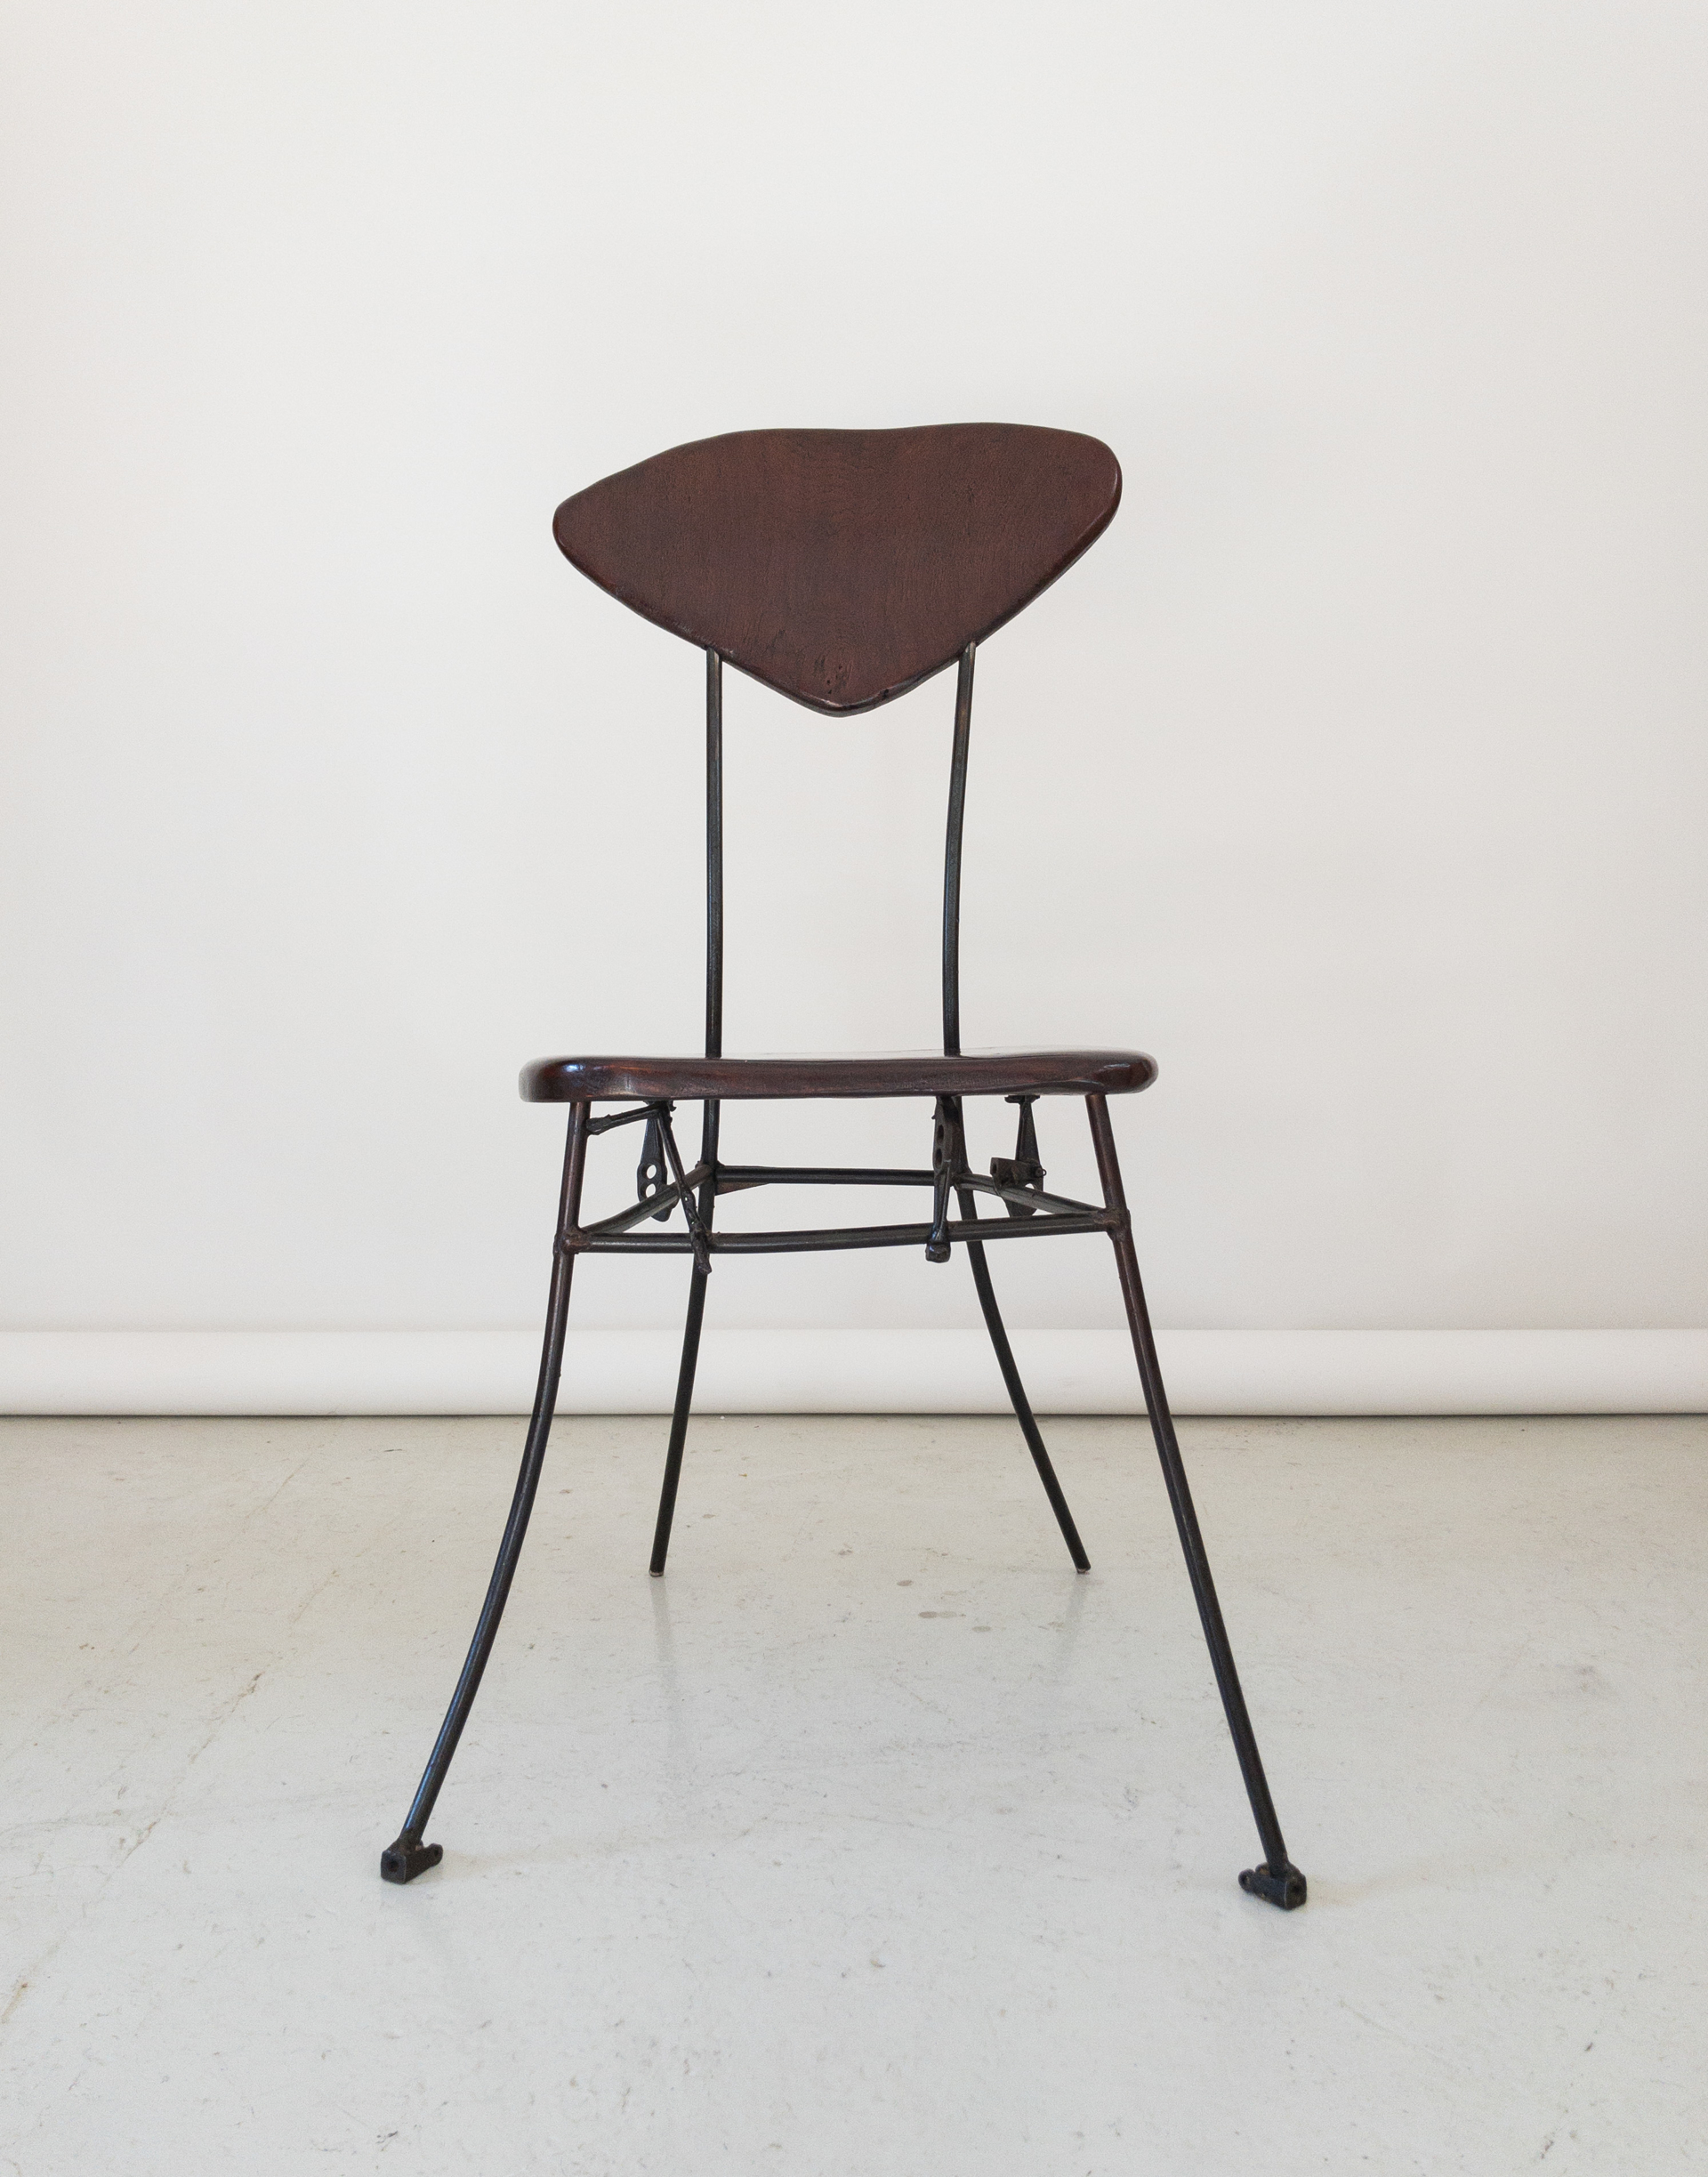 Unique Chair by Jacques Jarrige